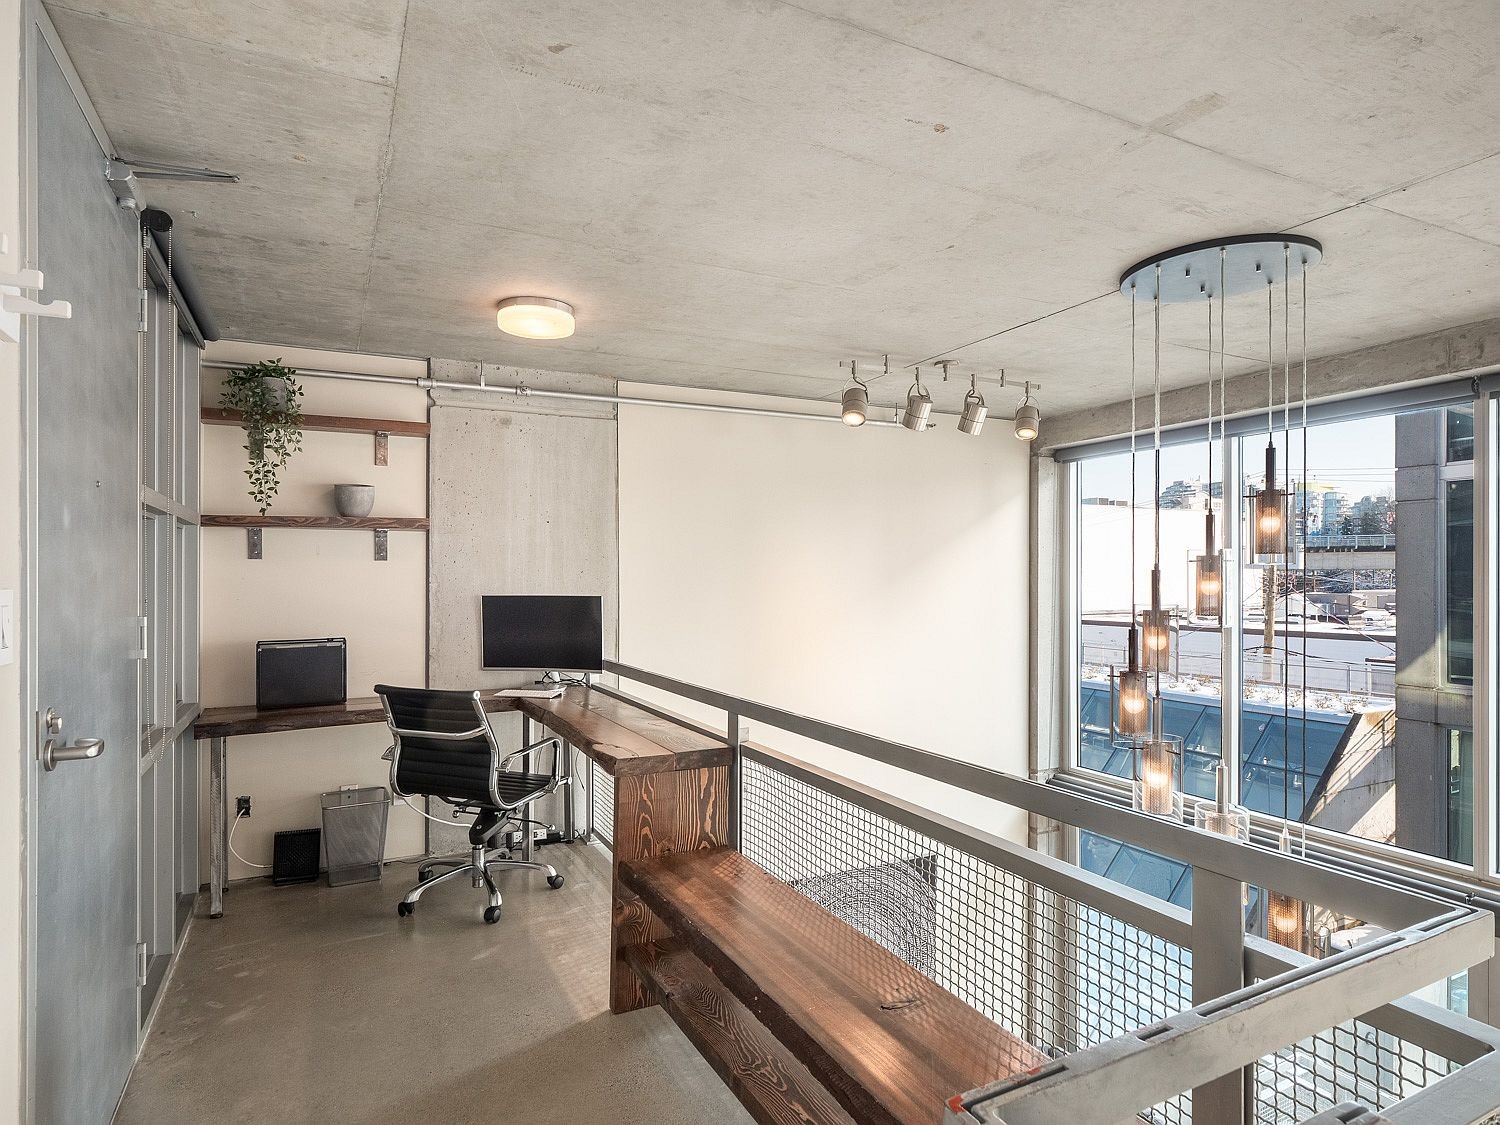 Loft level of the apartment with a view of the living area and beyond